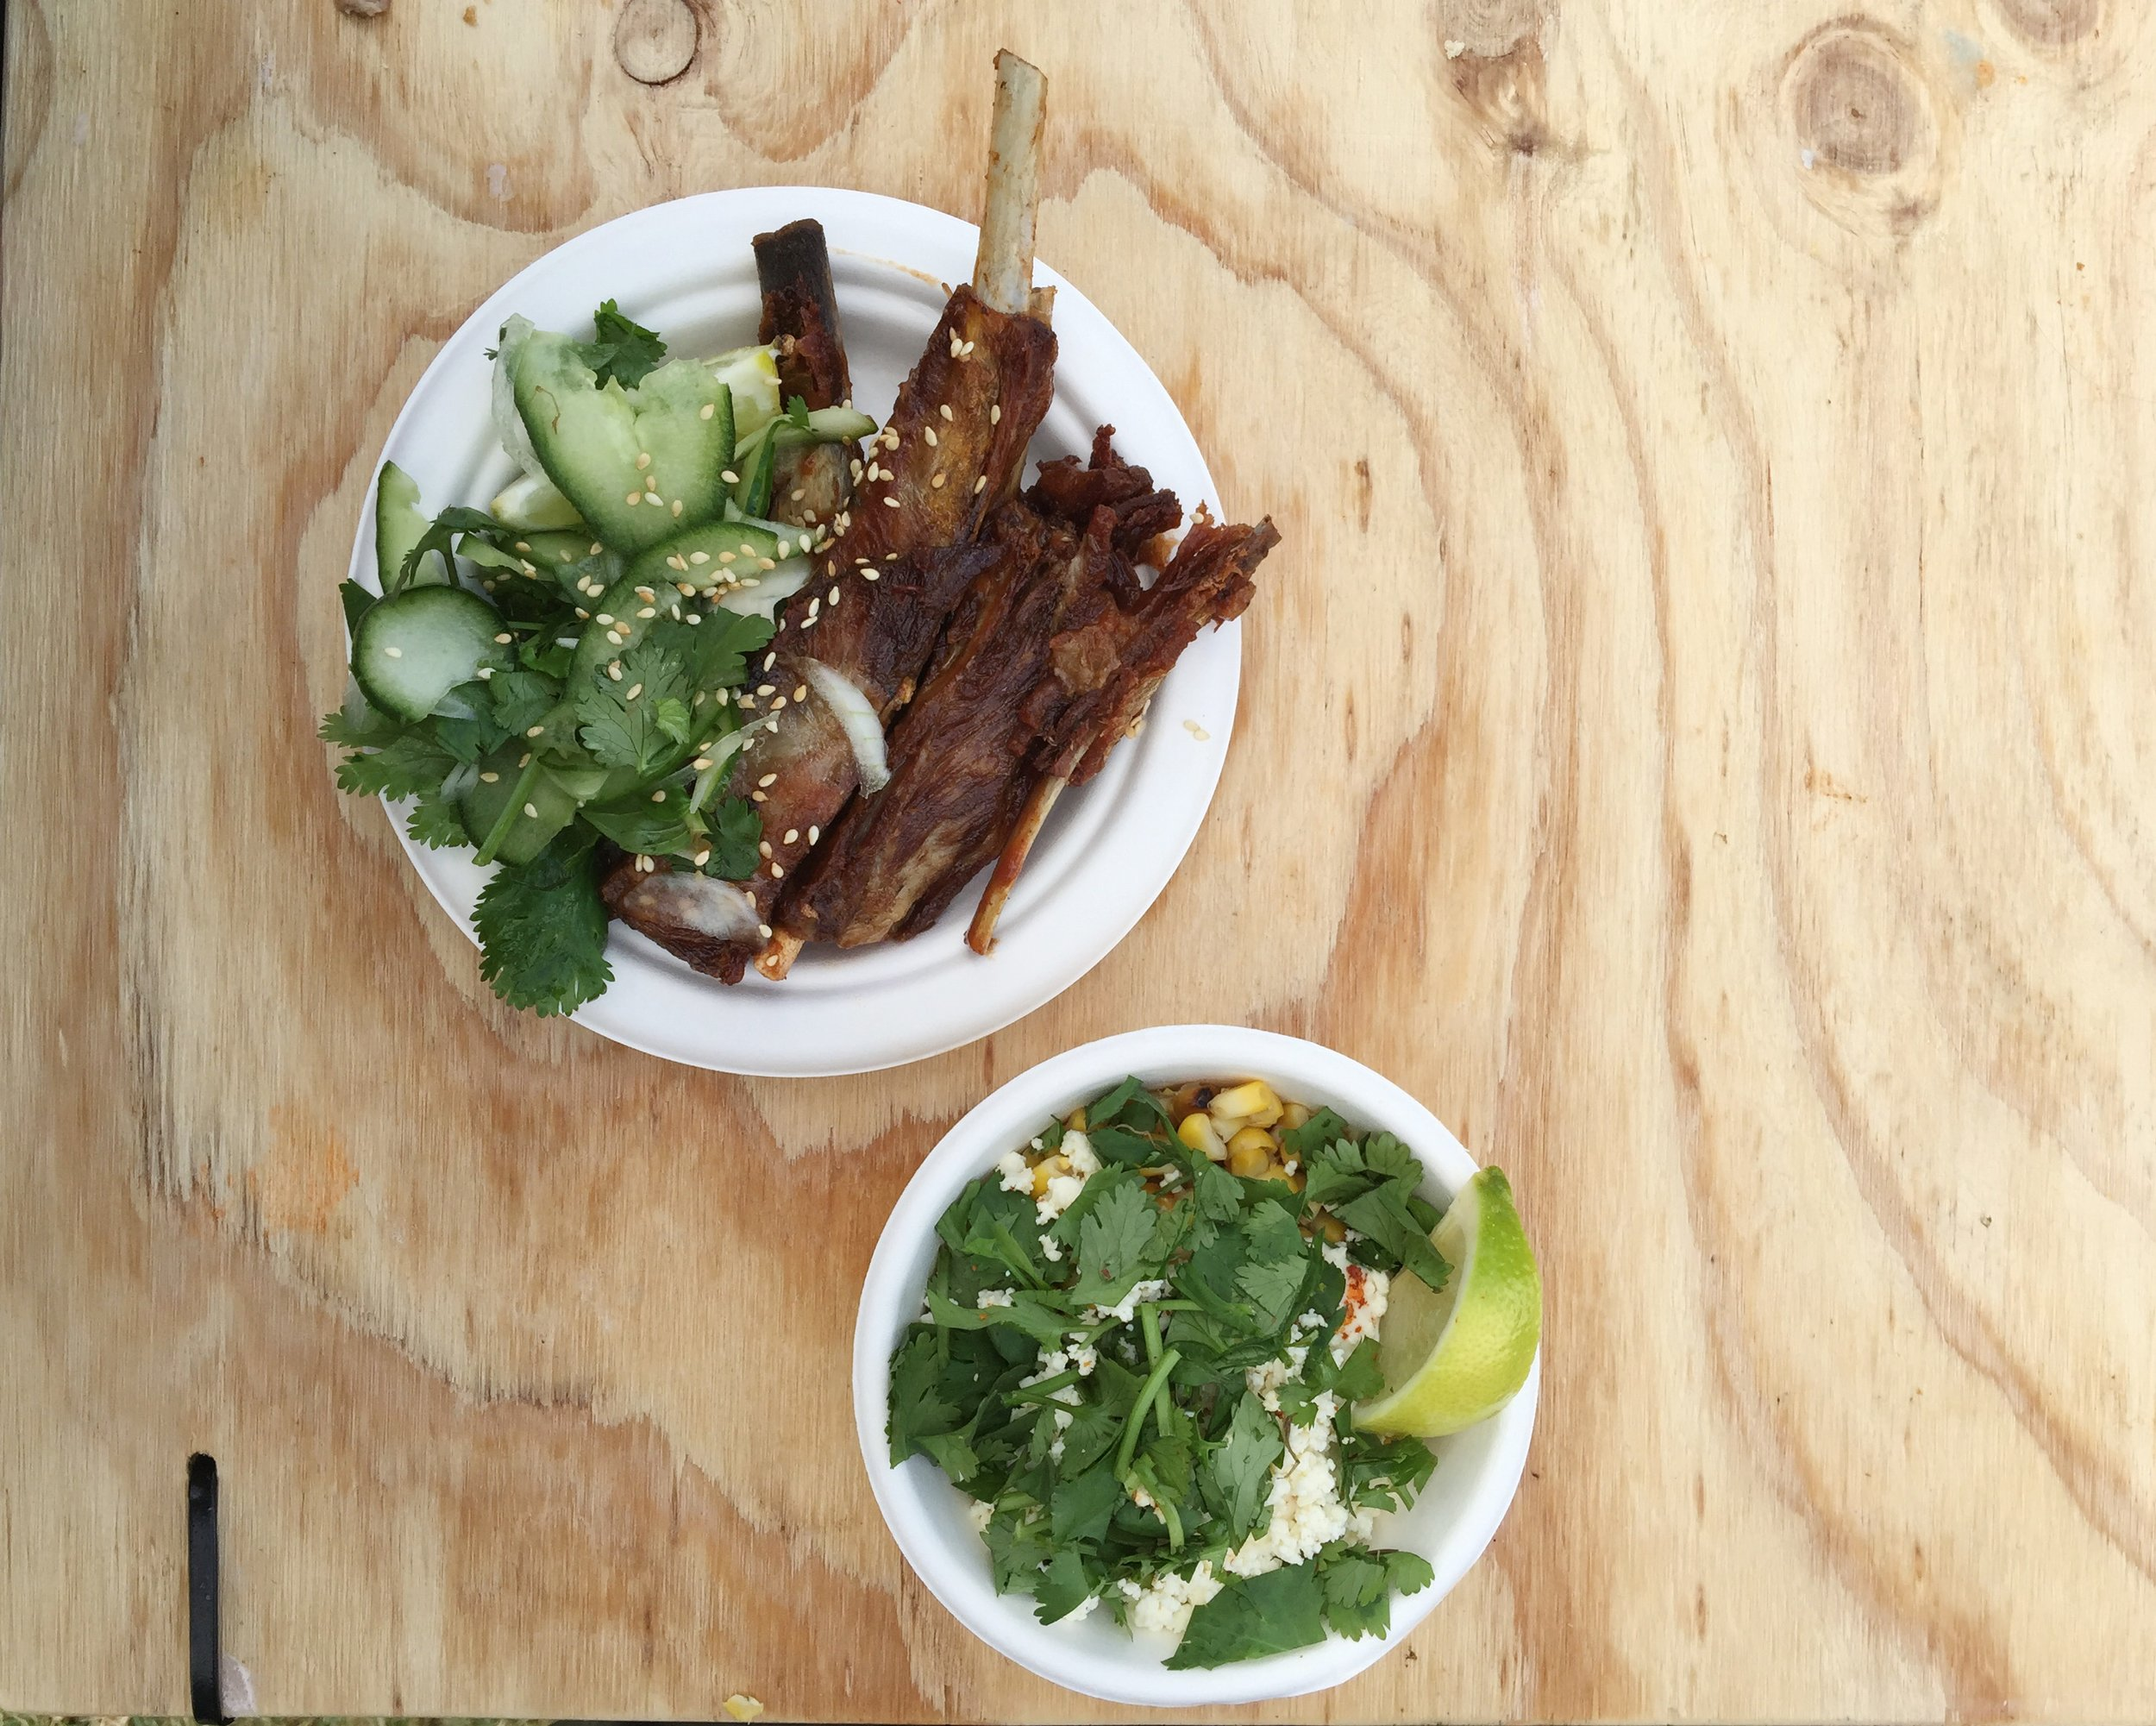 Those famous lamb ribs and a joyous serving of street corn served with crema, fresh cheese, chilli and lime.